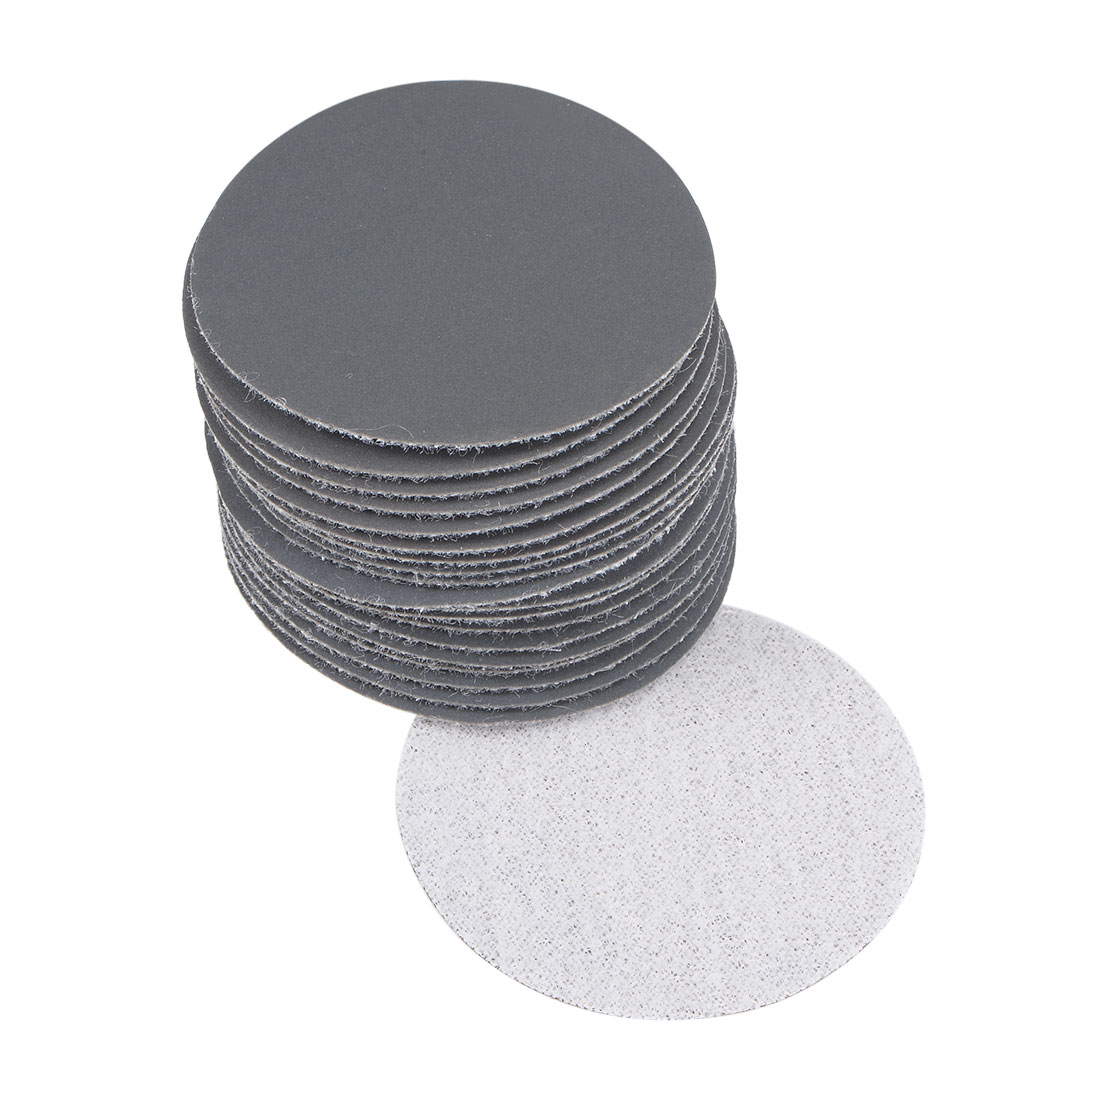 2 inch Wet Dry Discs 1200 Grit Hook and Loop Sanding Disc Silicon Carbide 20pcs